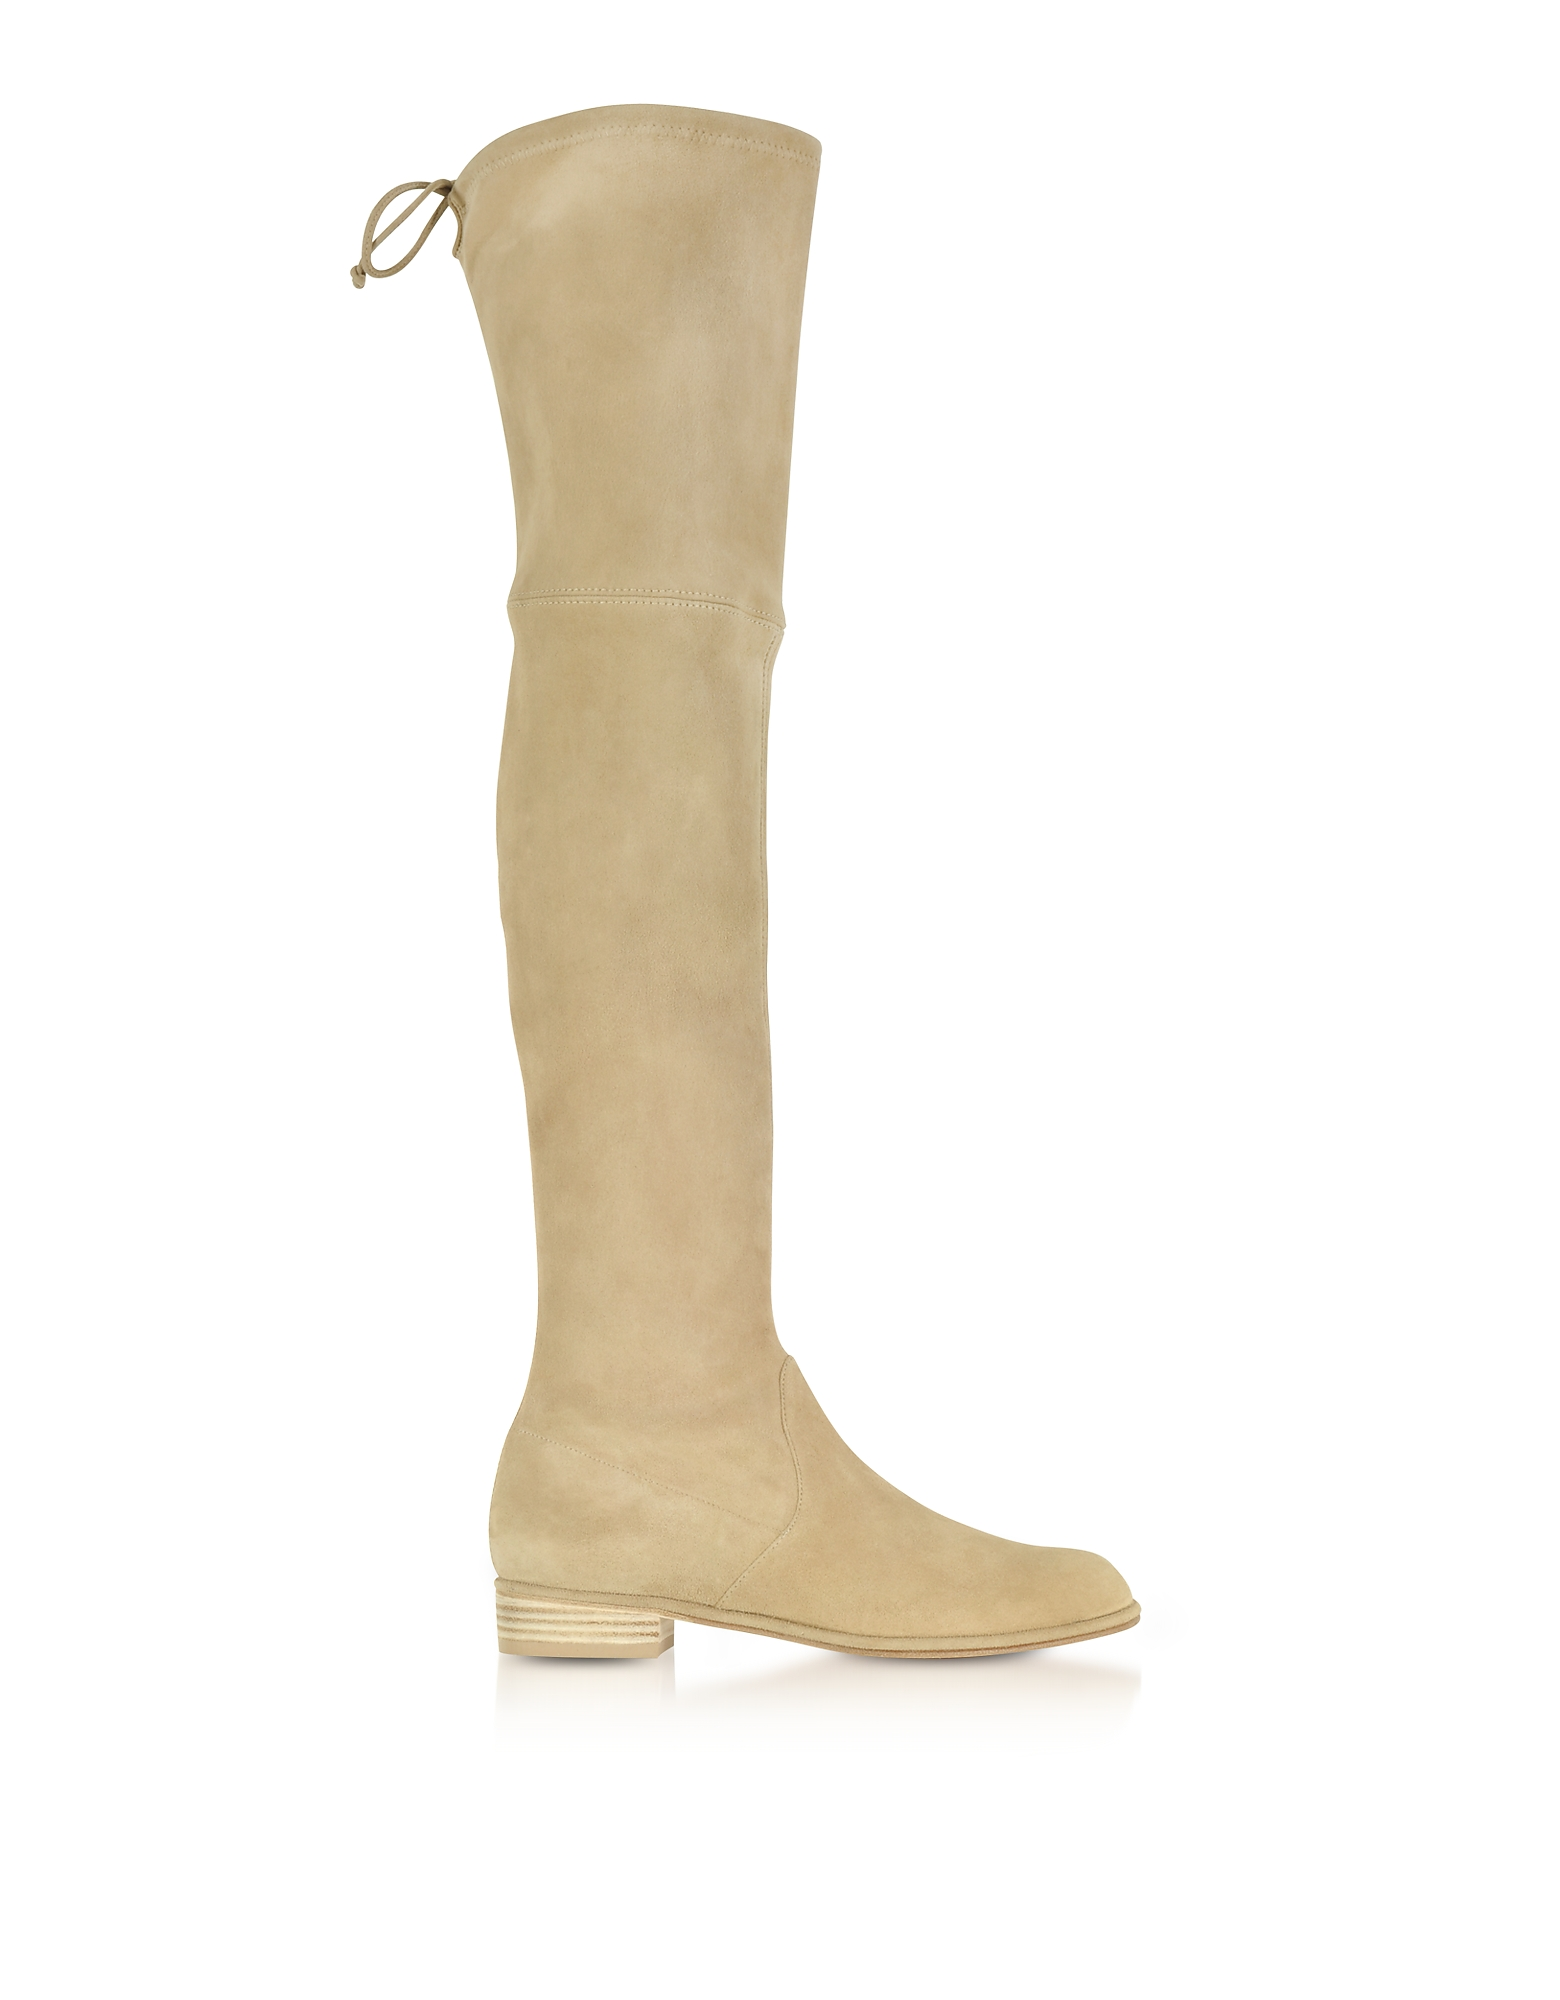 Stuart Weitzman Shoes, Lealowland Mojave Suede Over The Knee Boots